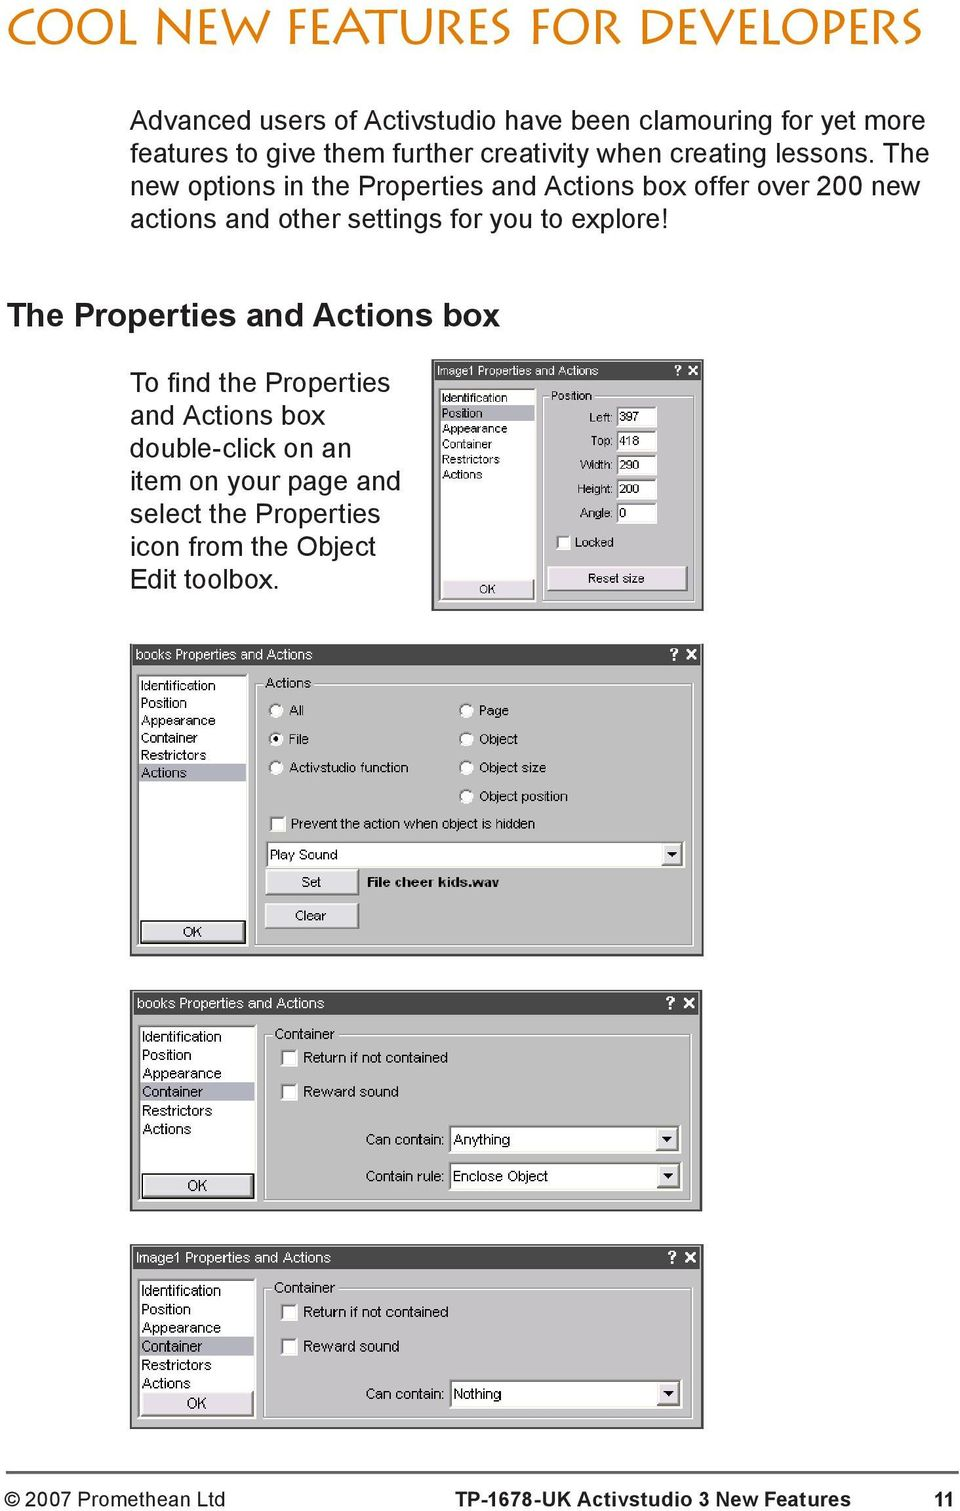 The new options in the Properties and Actions box offer over 200 new actions and other settings for you to explore!